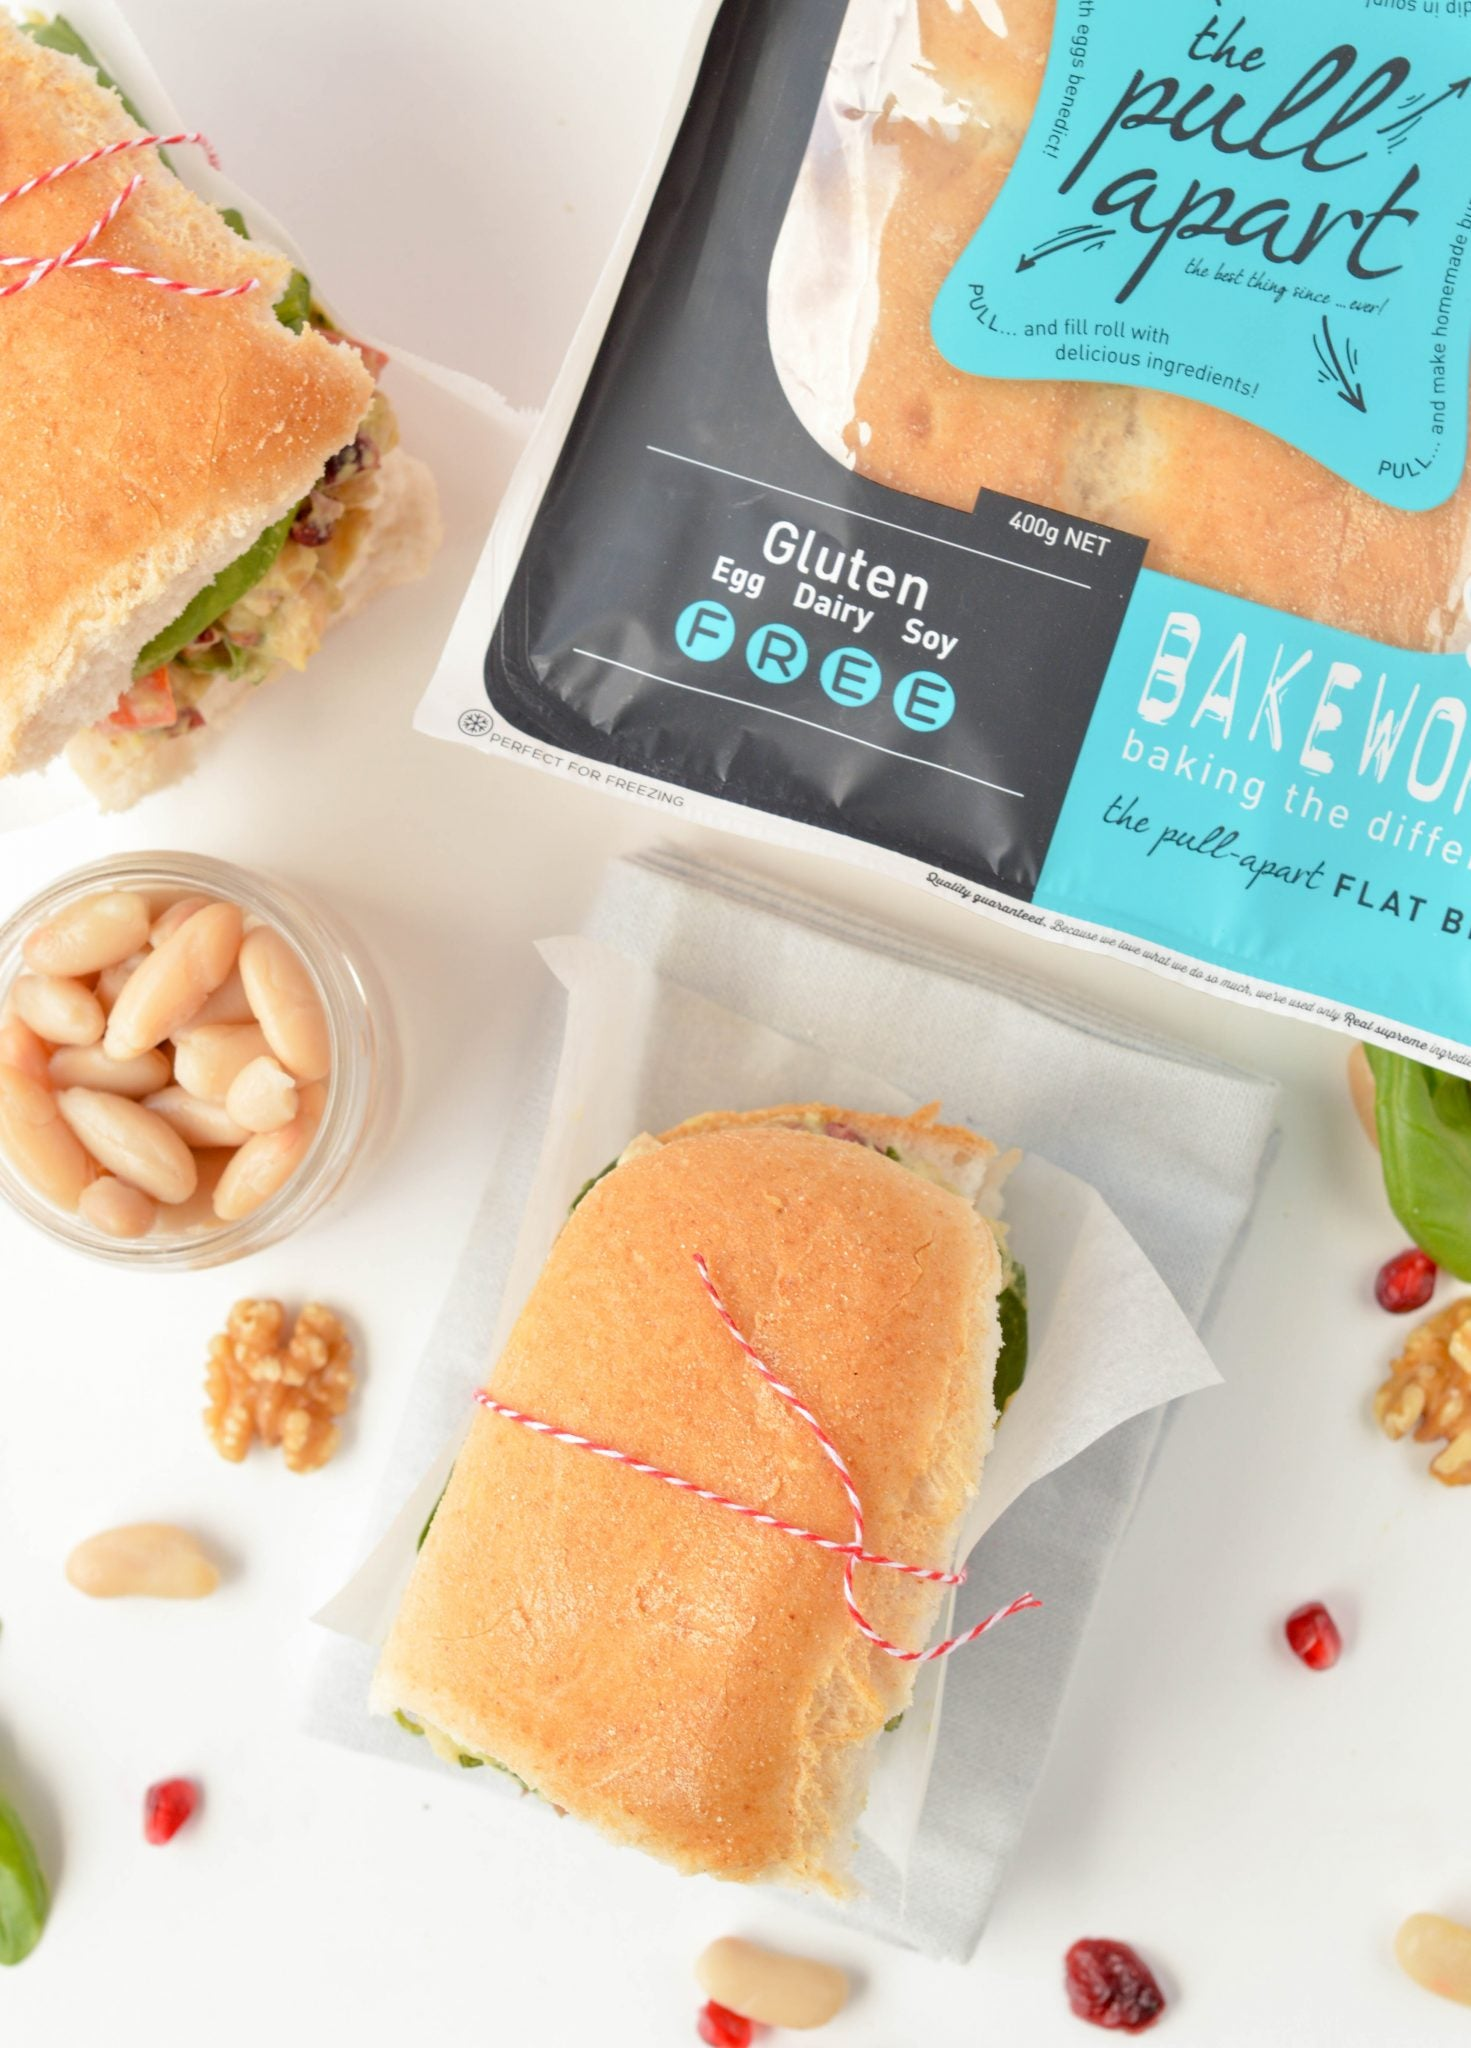 Pullapart White Bean Sandwich with Basil, Cranberries & Walnuts - created by Carine at Sweetashoney